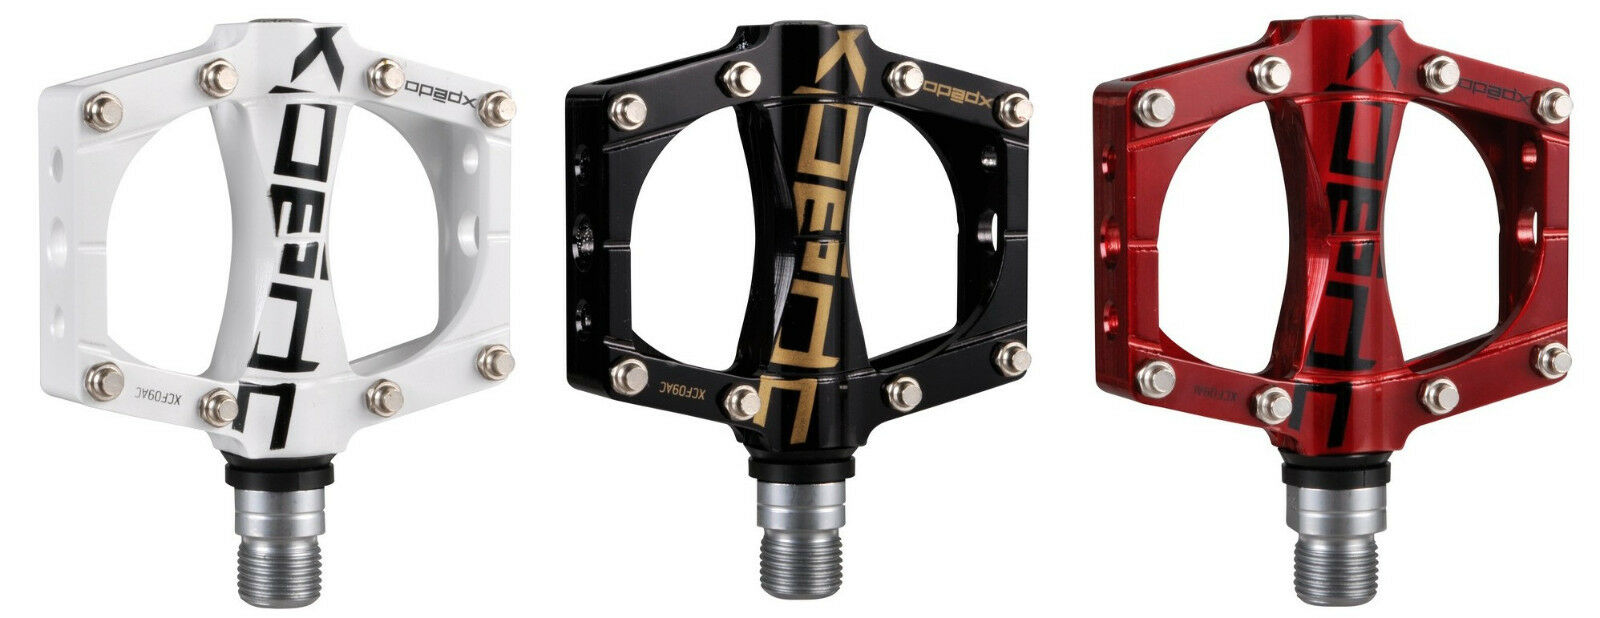 Pedals Xpedo Traverse 9 Weight Approx 320 grams in Different Farbes